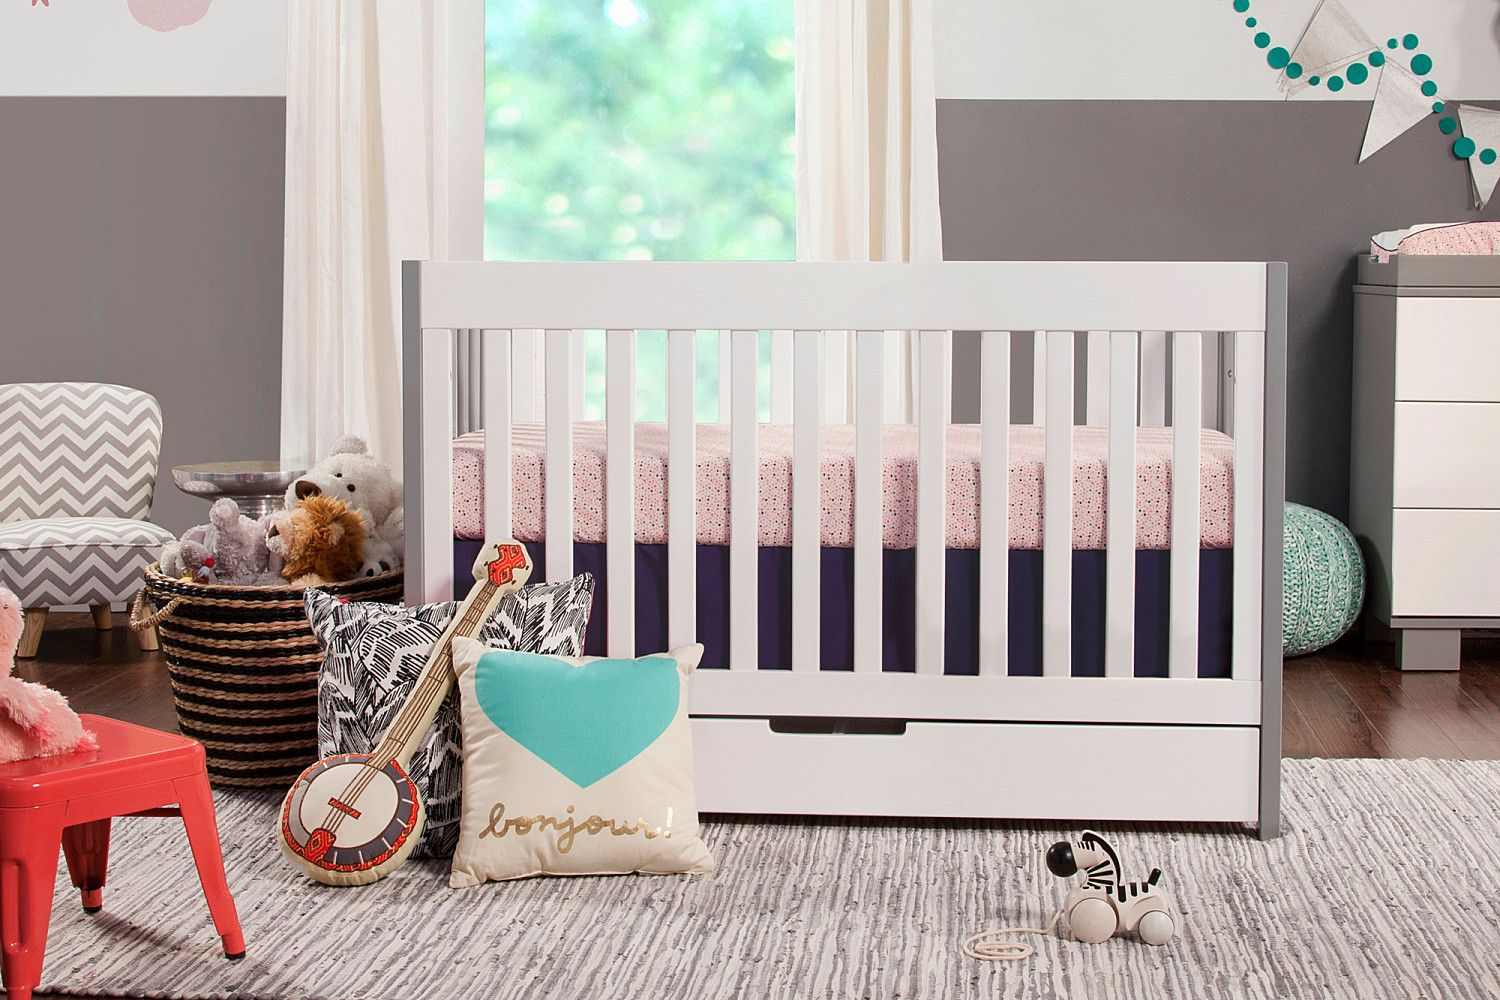 Best Mercer 3 In 1 Convertible Crib With Toddler Bed Conversion 400 x 300